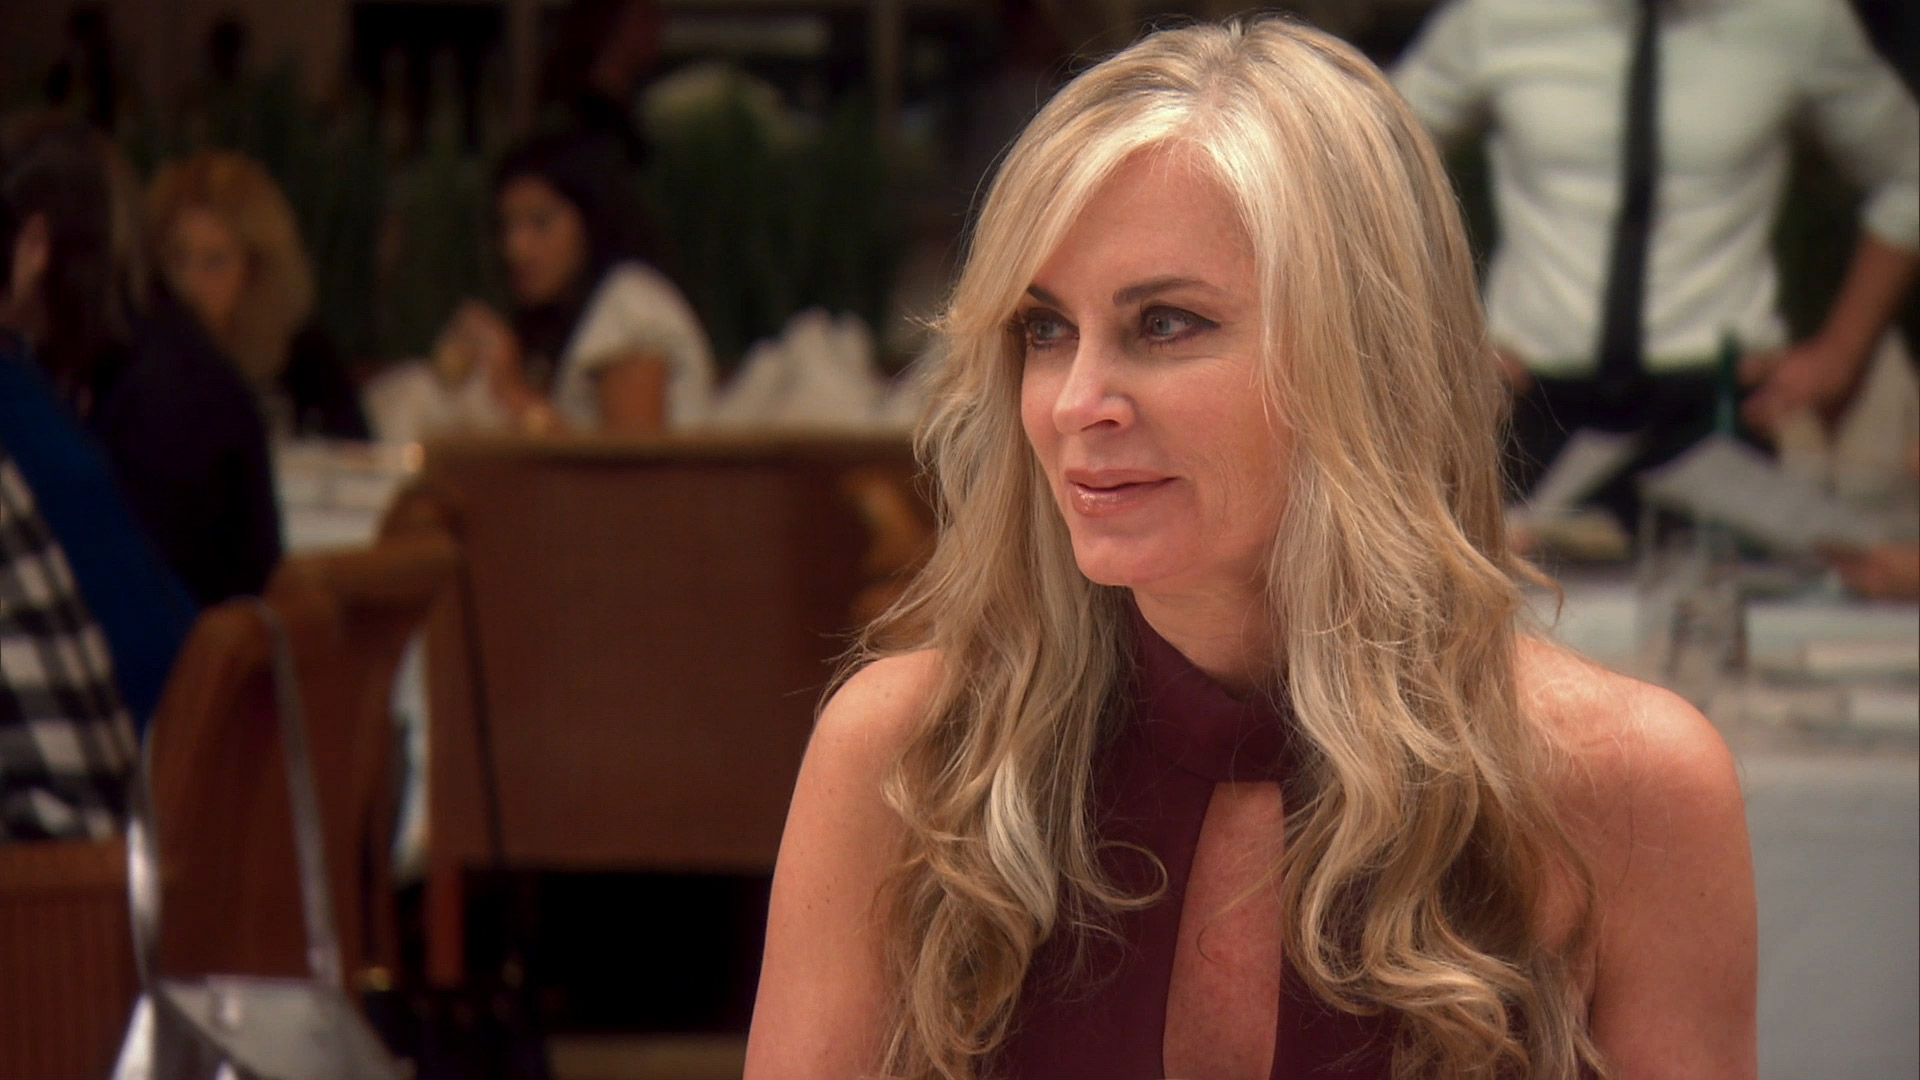 eileen davidson: i'm glad we can put that all behind us